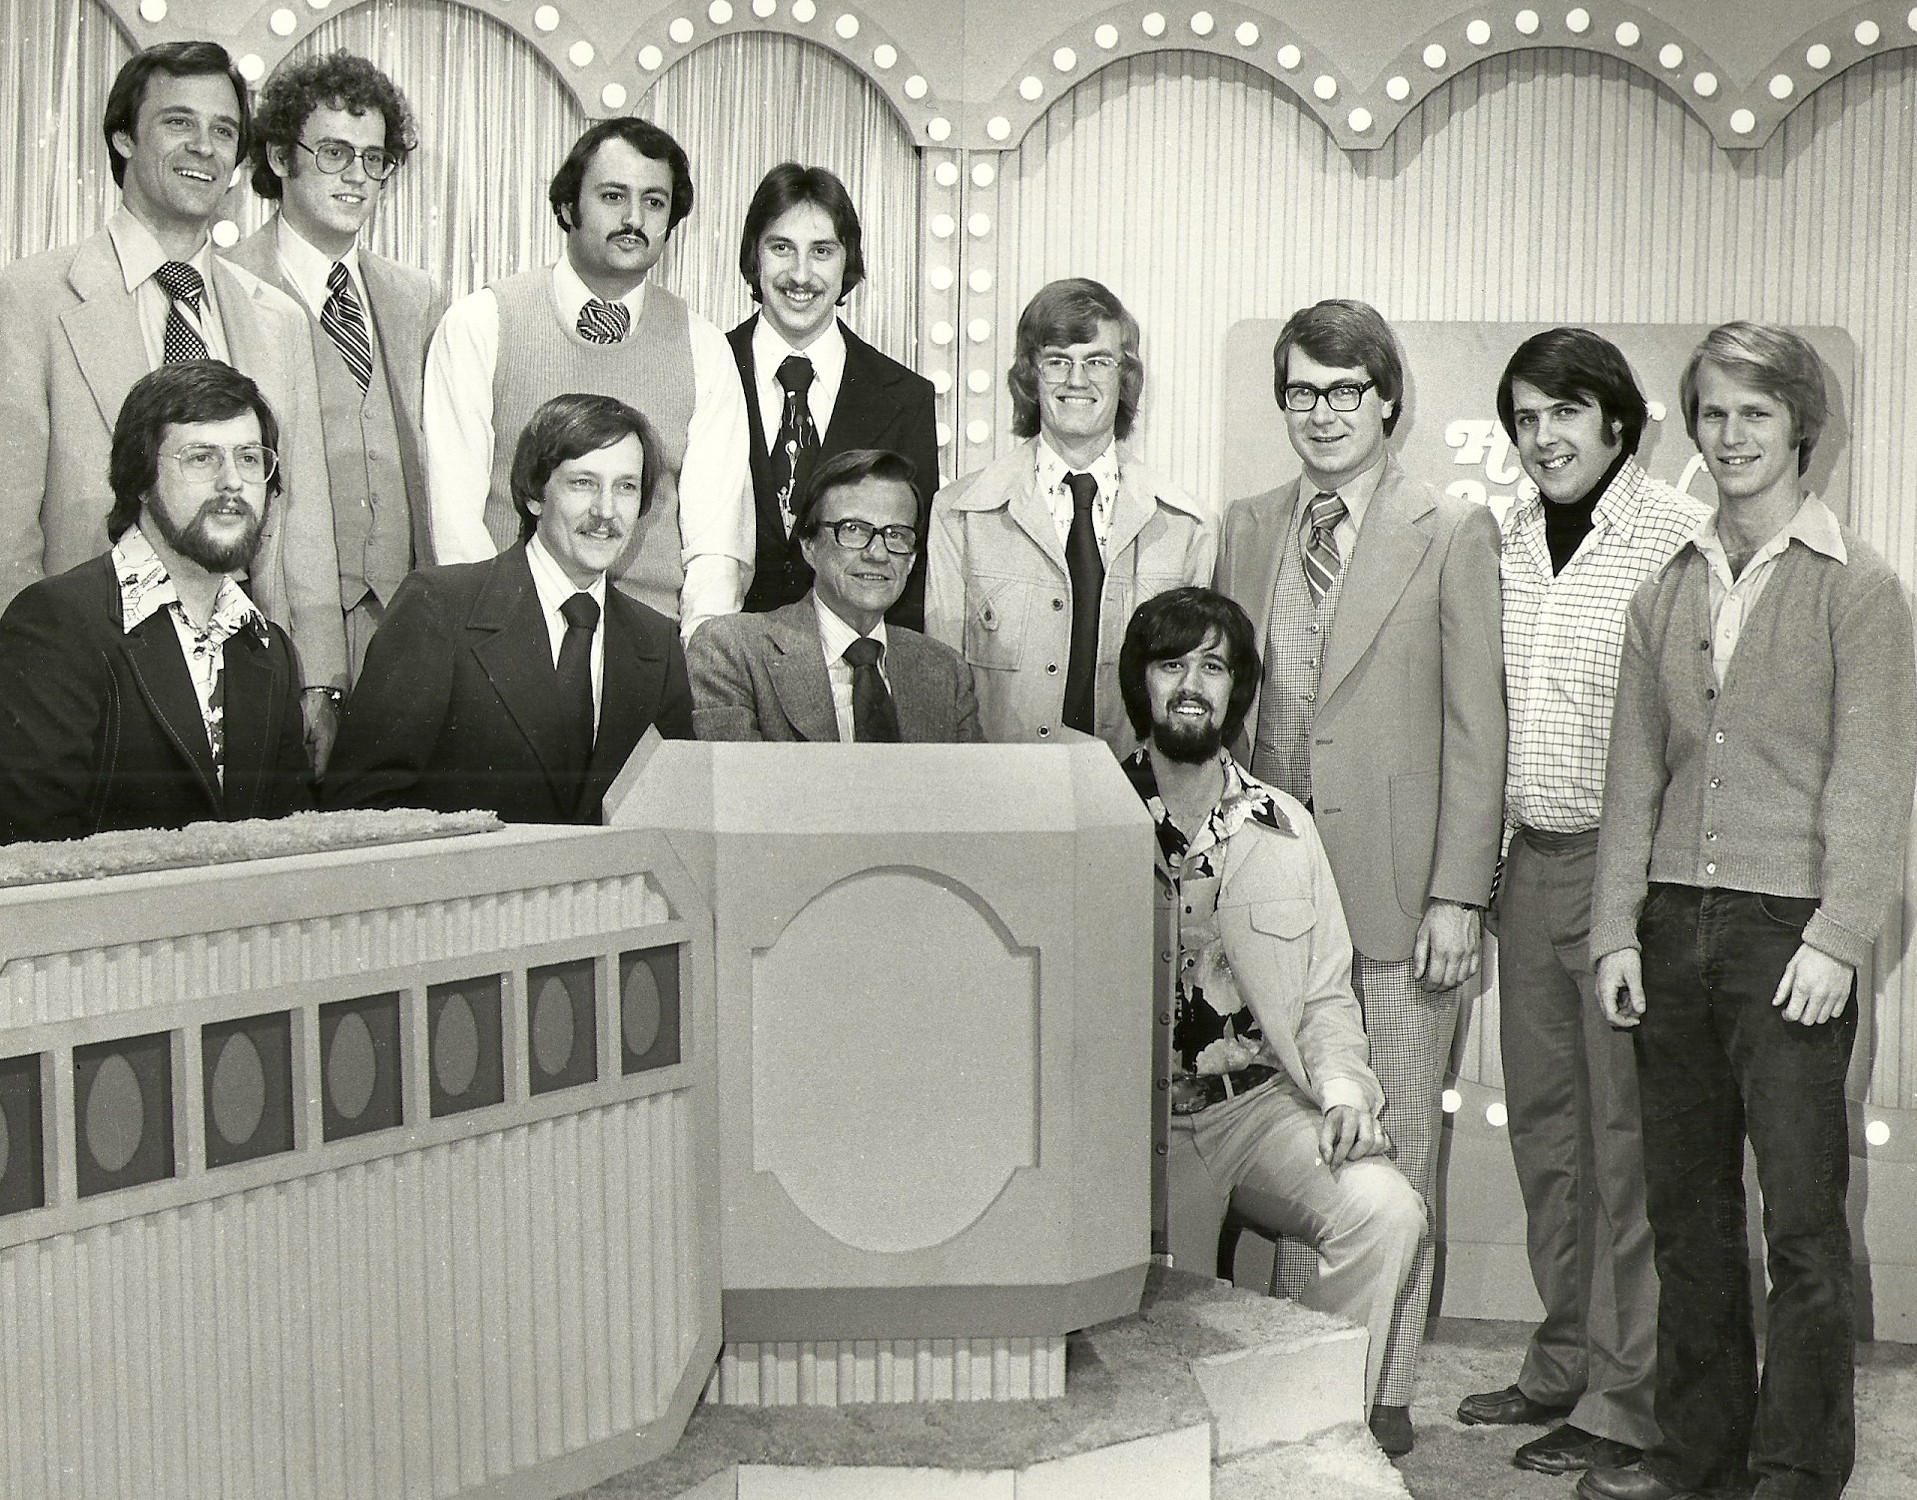 """TV game show host Bill Cullen and the QUBE technical crew for the first interactive game show """"How Do You Like Your Eggs?""""—which was broadcast to 200 homes in Upper Arlington during the summer of 1977. Jim is seated on the far left."""